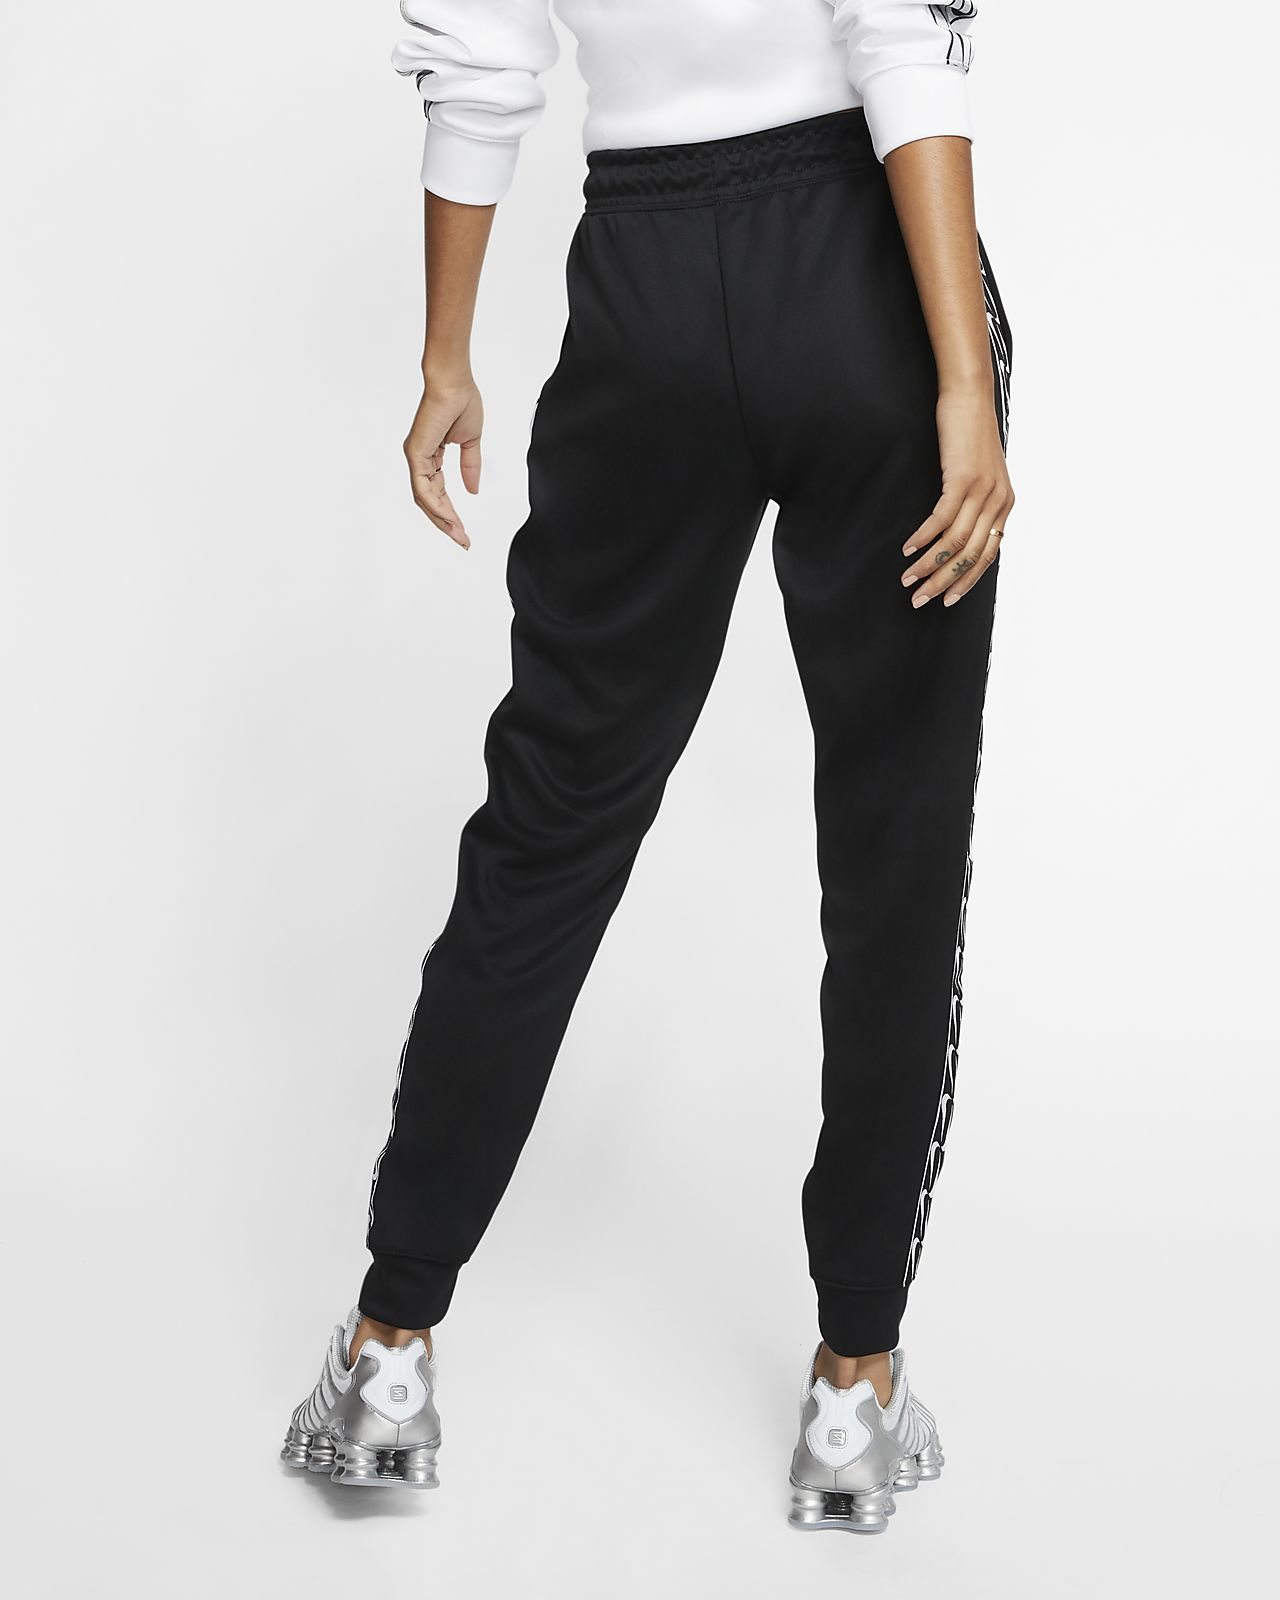 survetement femme nike pantalon blanc